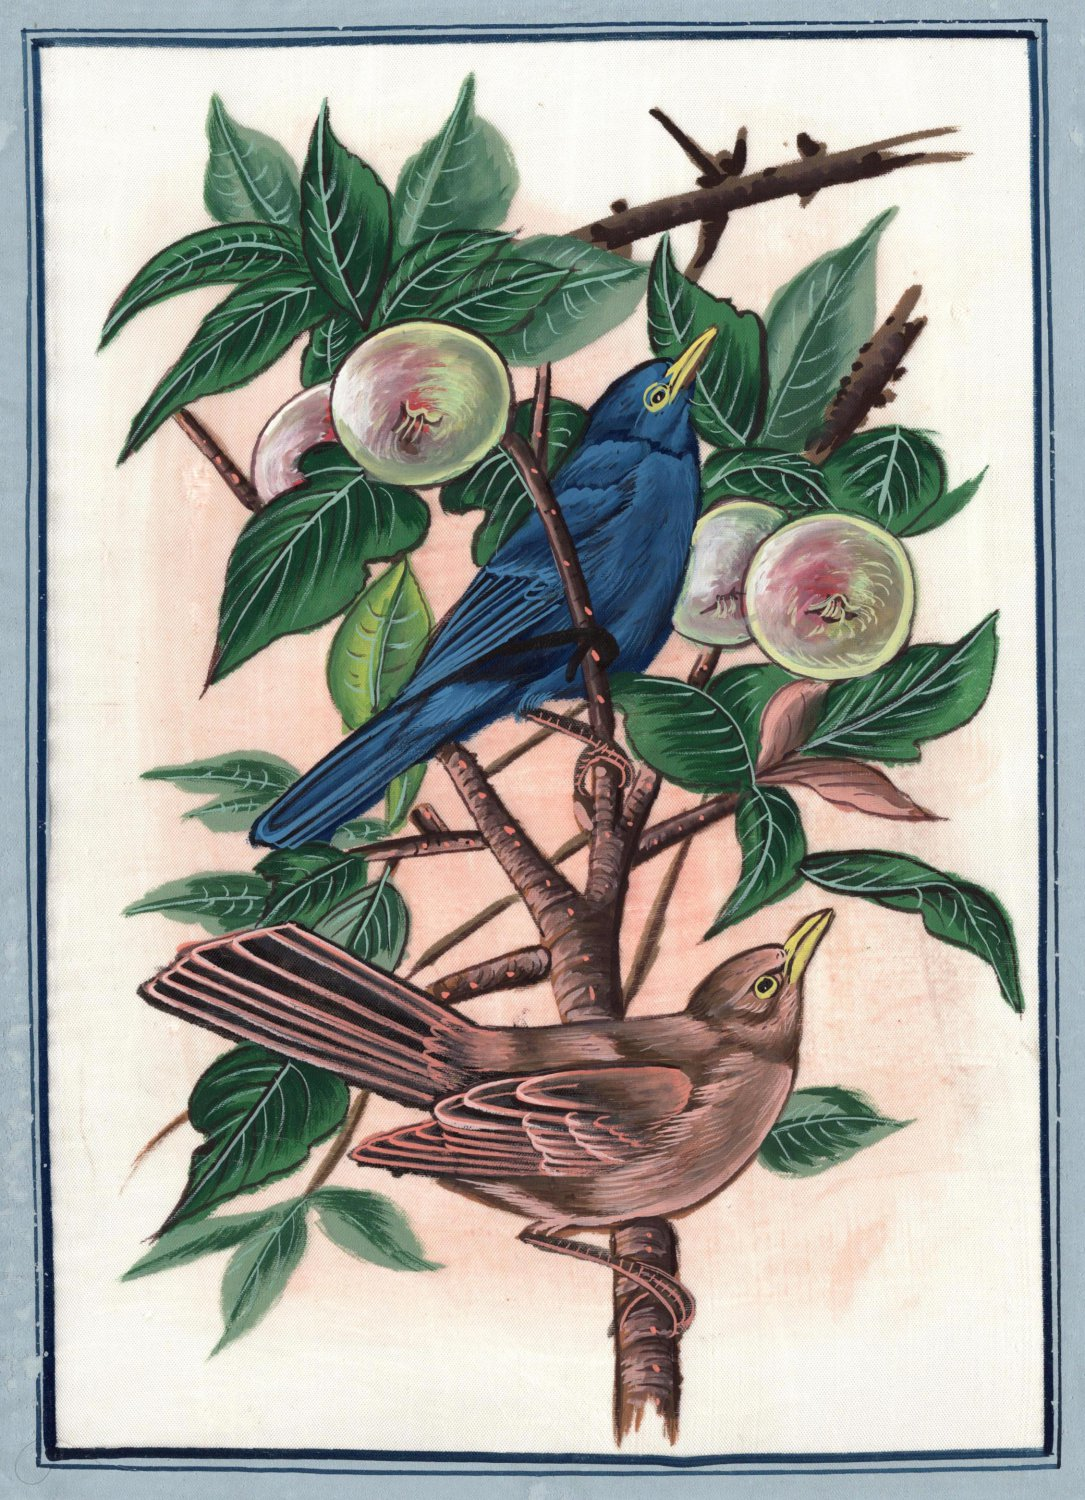 Bird Fruit Nature Art Handmade Indian Watercolor Silk Miniature Decor Painting